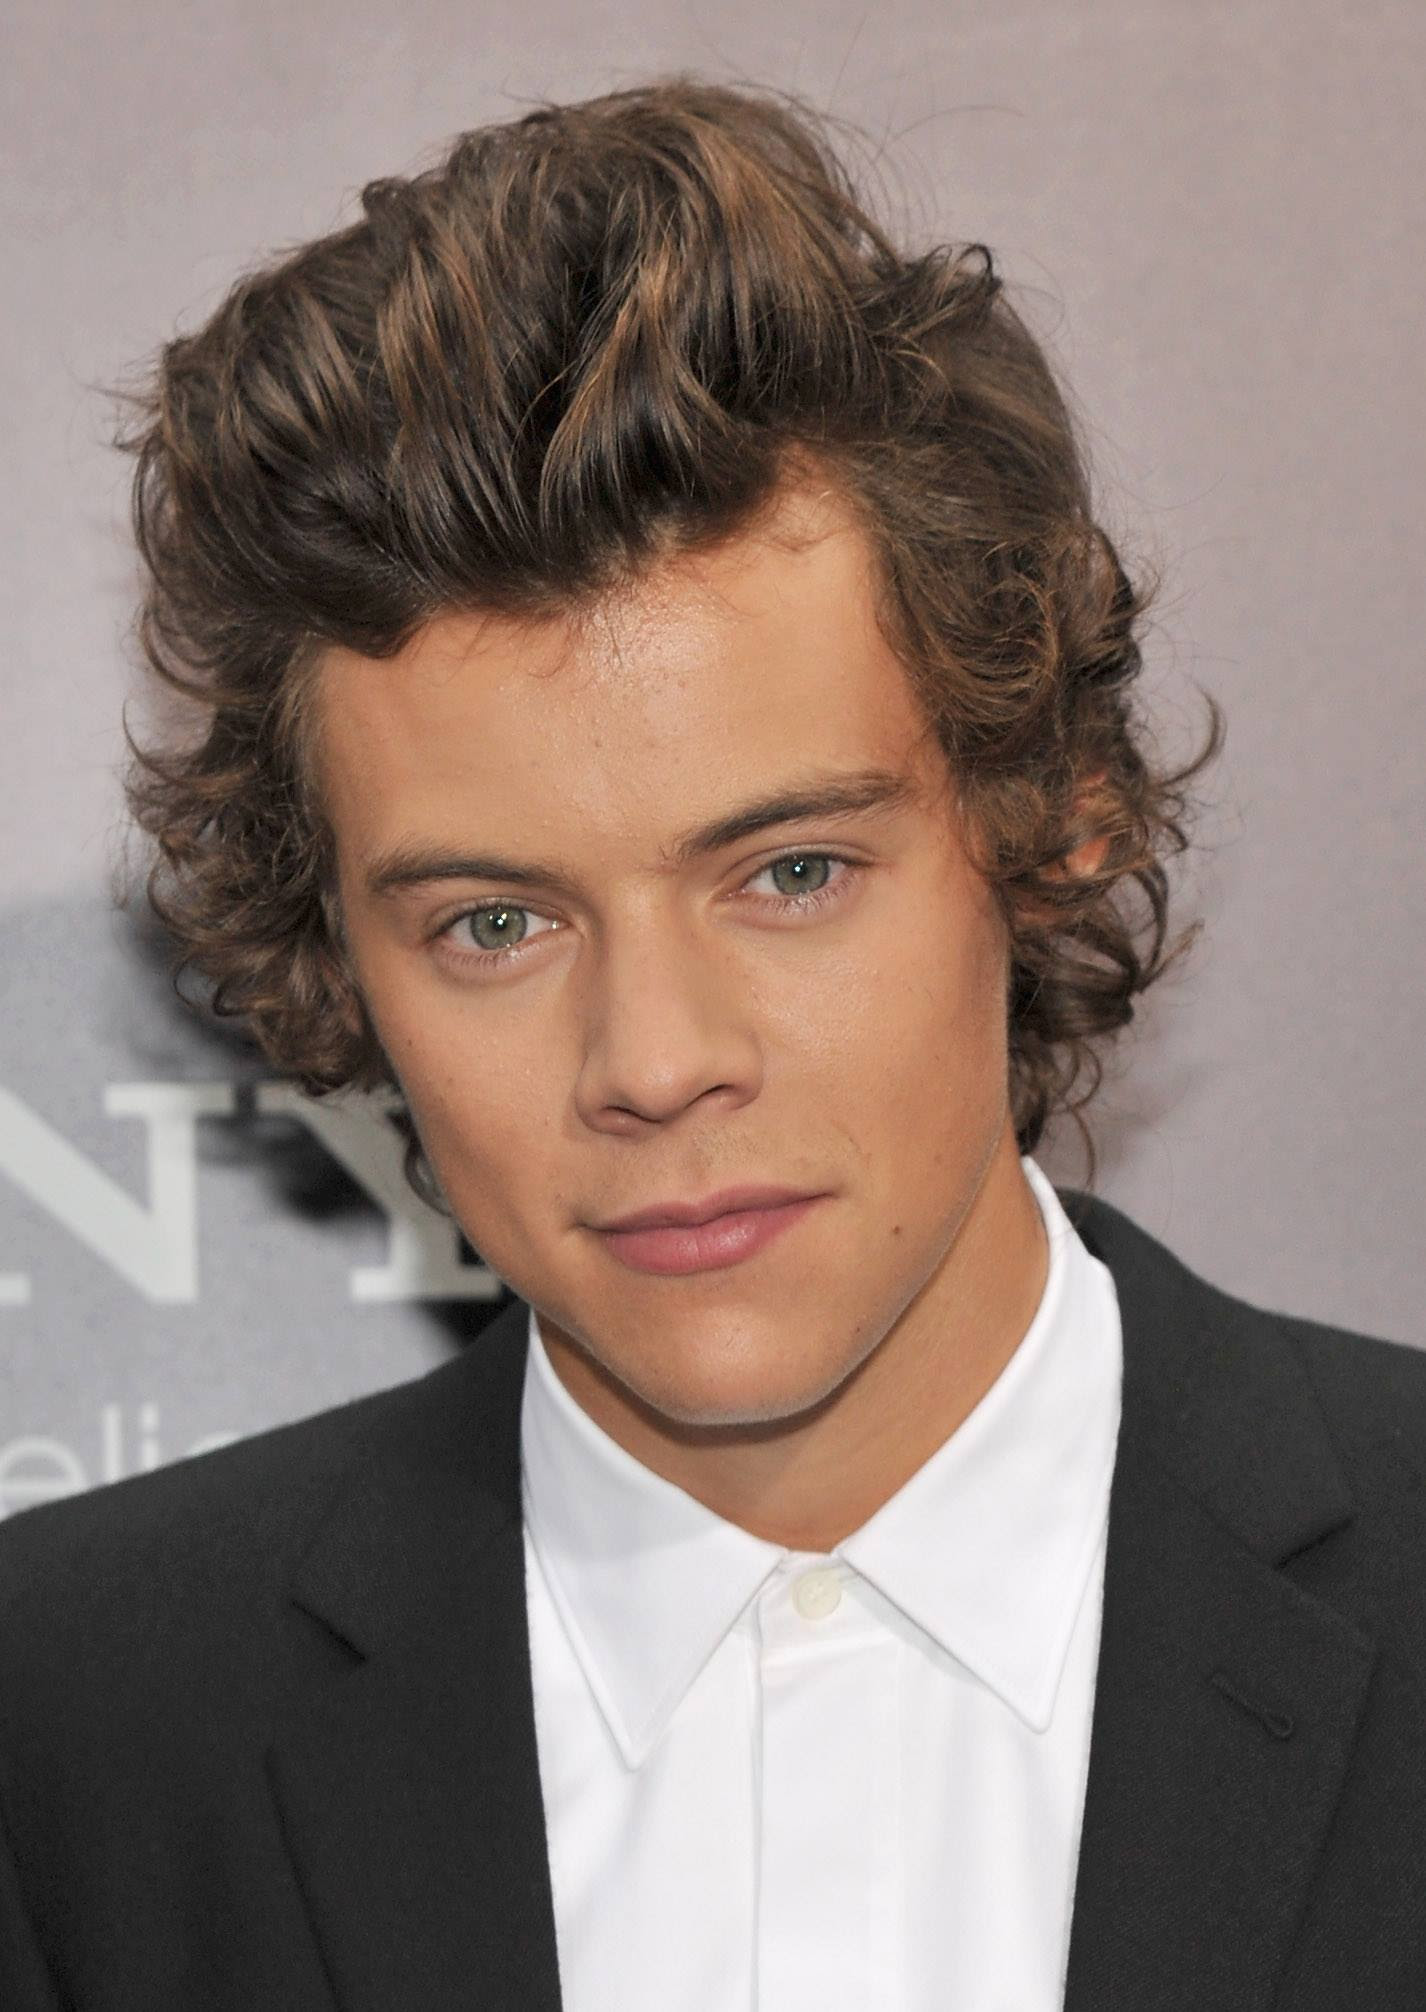 Hot Harry Styles - One Direction Photo (36818333) - Fanpop